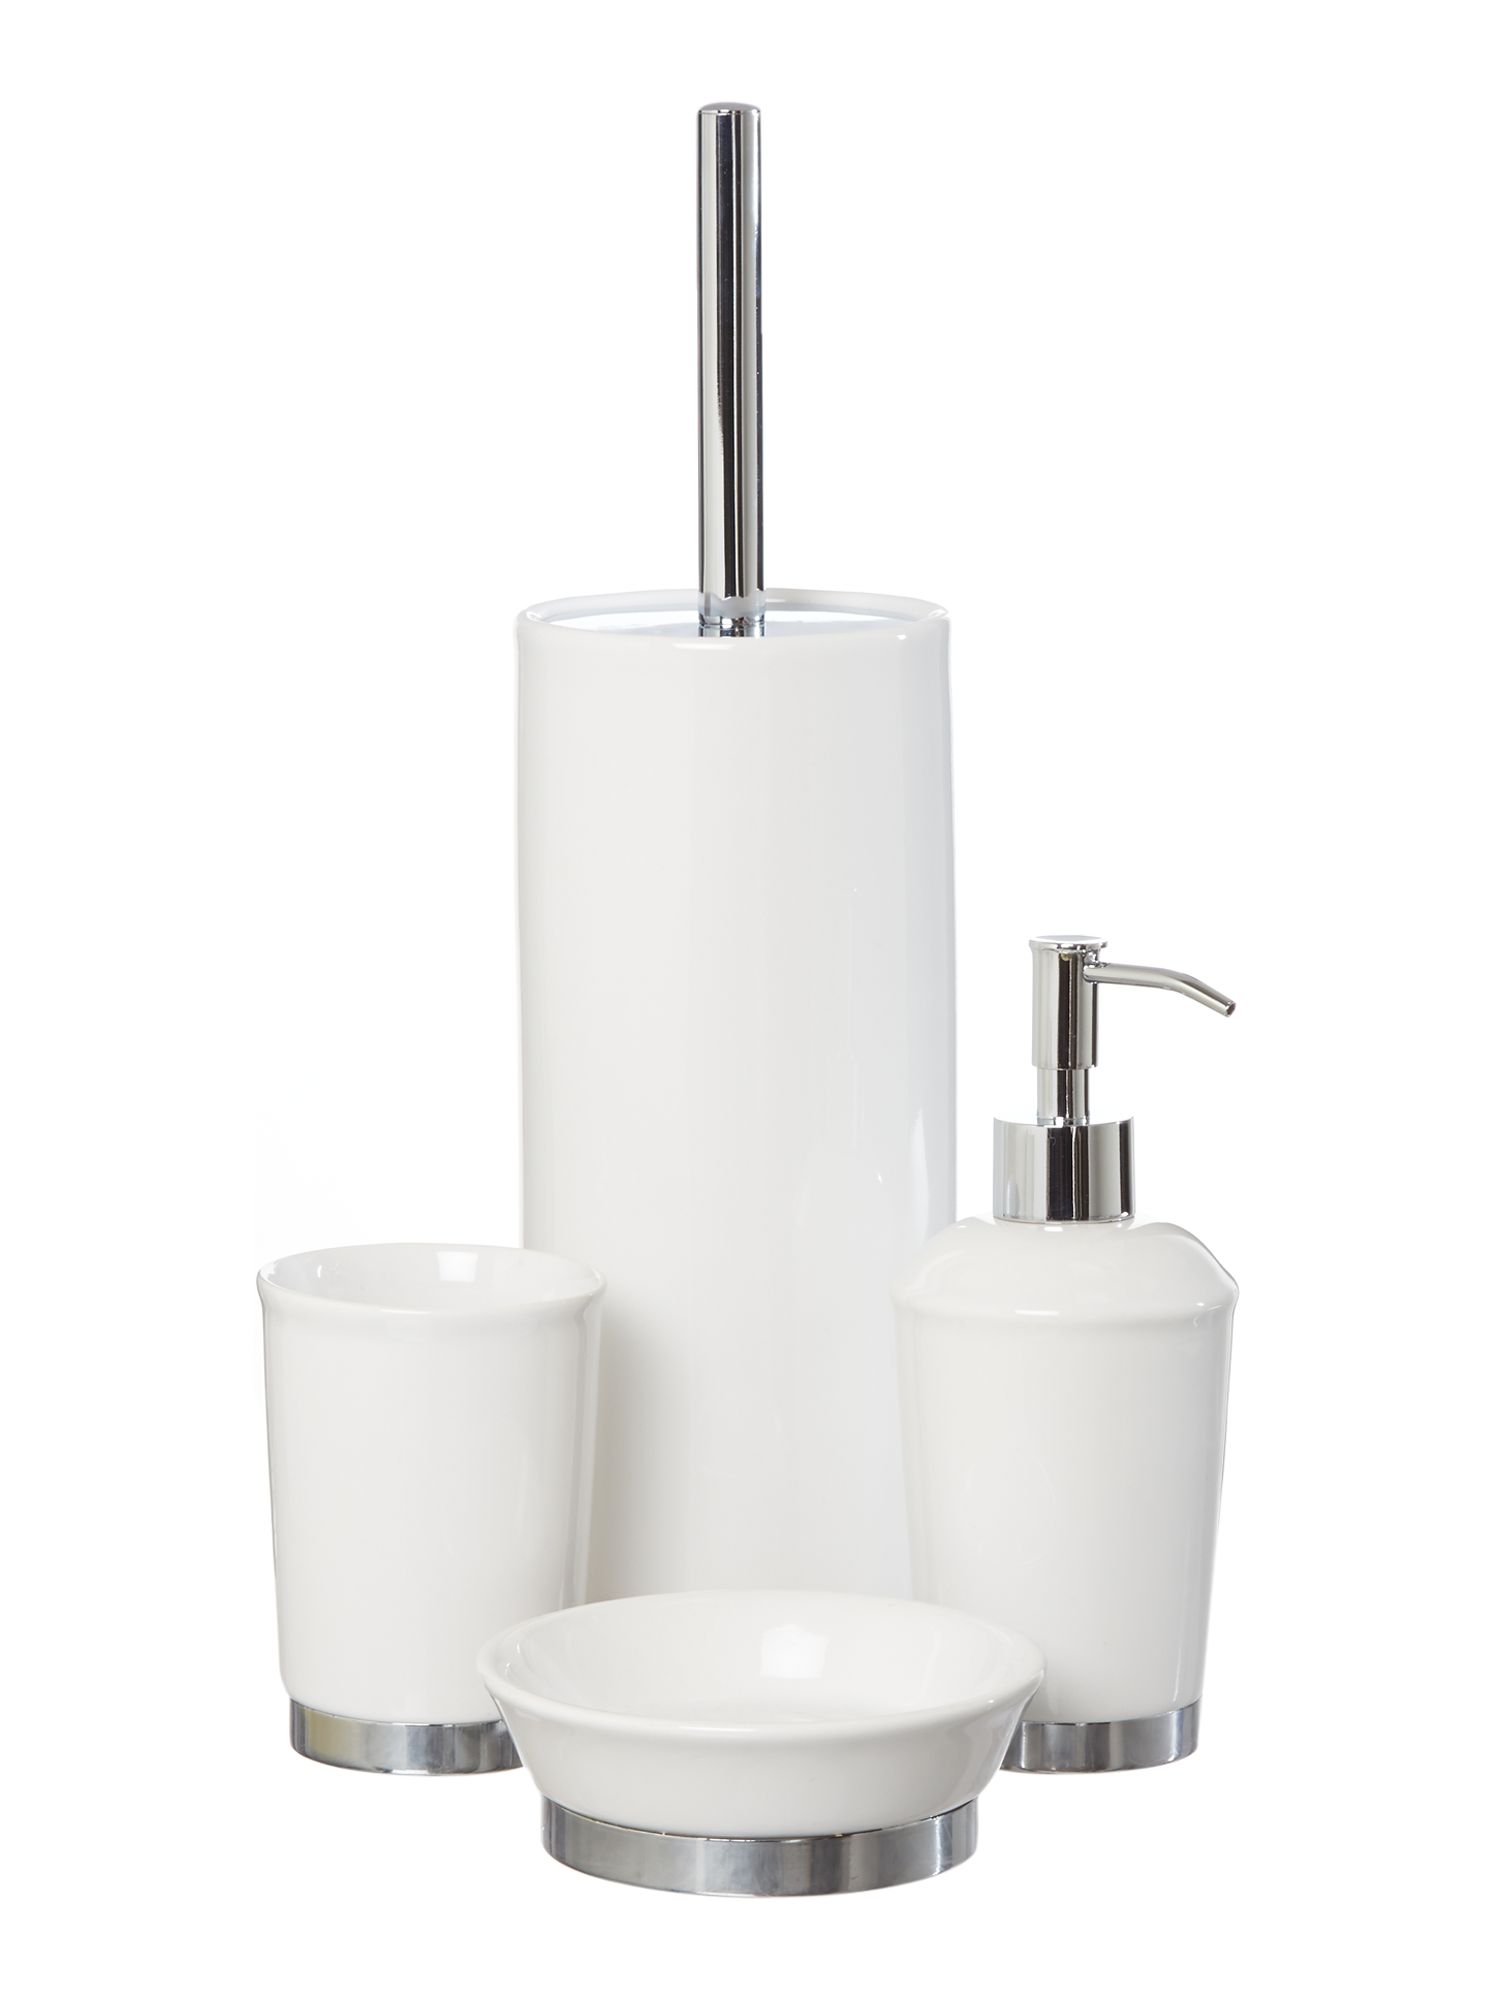 bathroom accessories | accessory sets - house of fraser